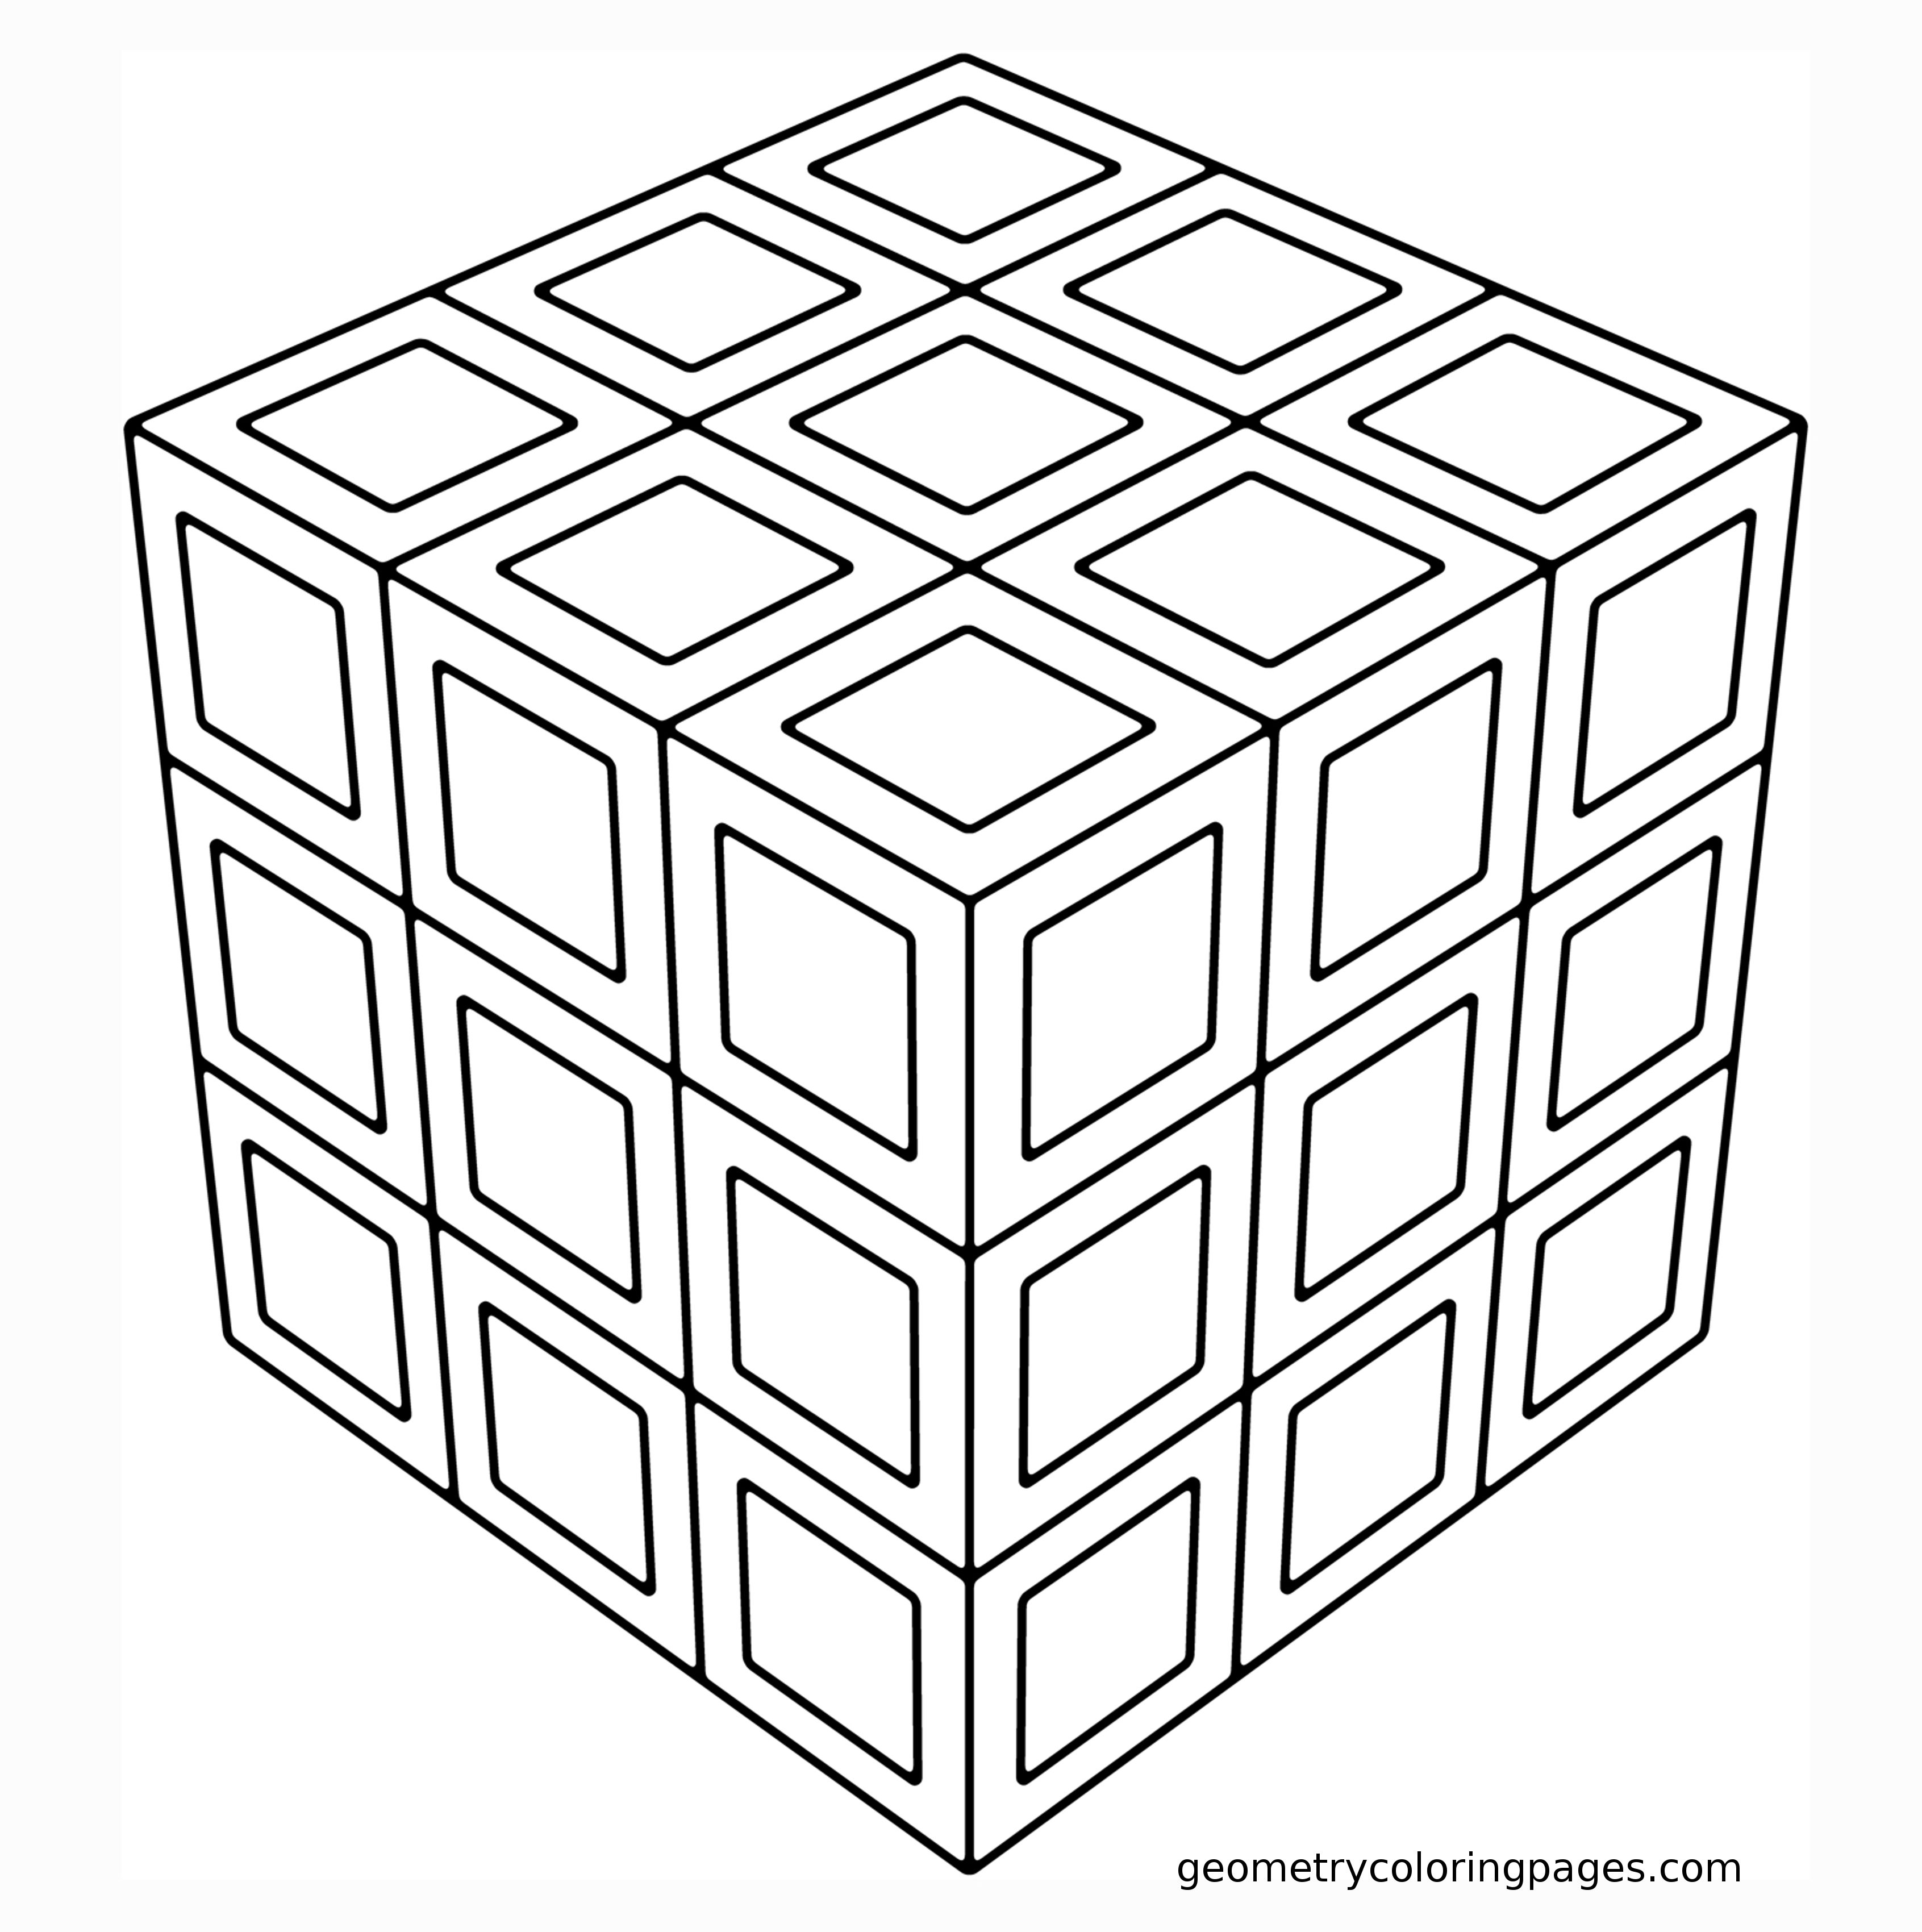 Coloring Coloring Pages Geometric Art Design Patterns